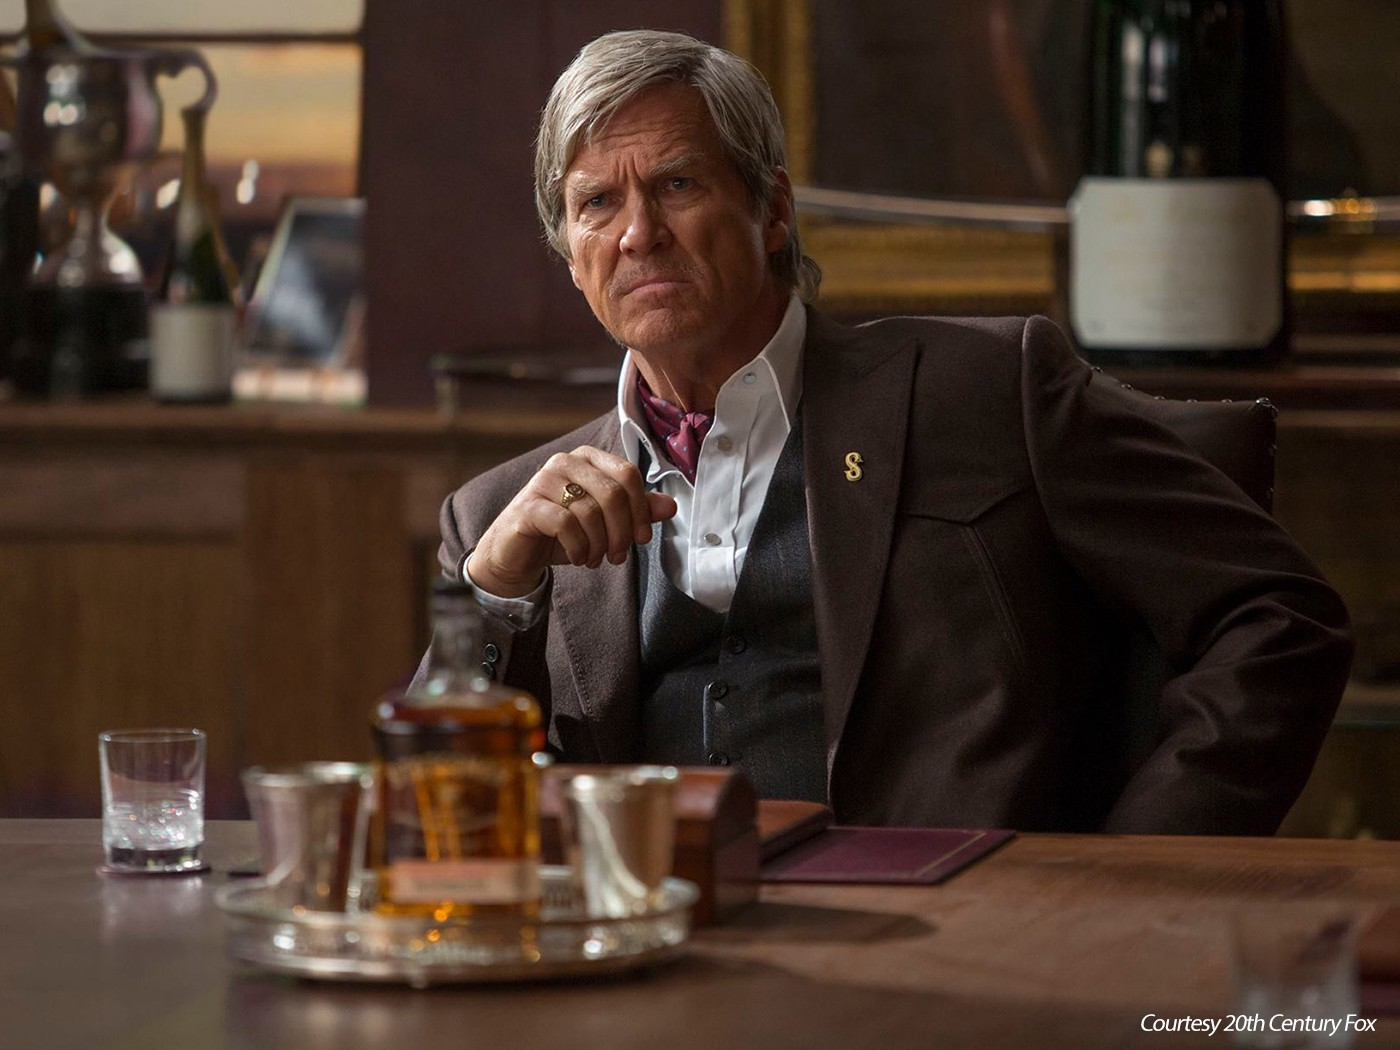 """Jeff Bridges as """"Champ,"""" the leader of Statesman in """"Kingsman: The Golden Circle."""" Photo courtesy 20th Century Fox."""